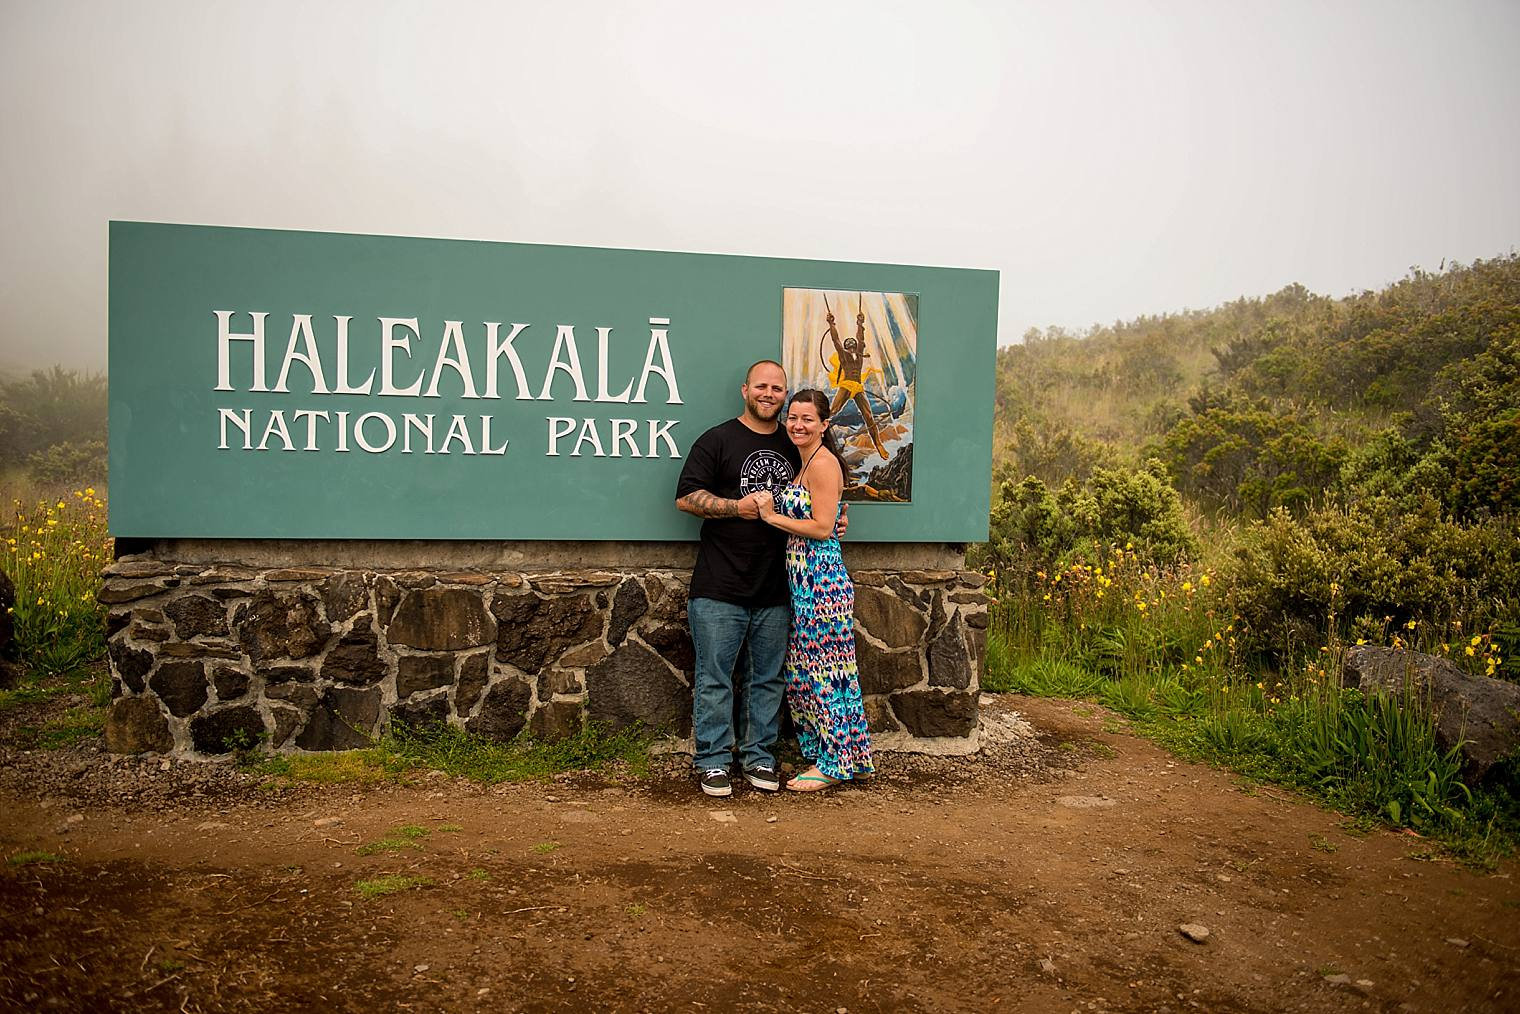 haleakala national park sign